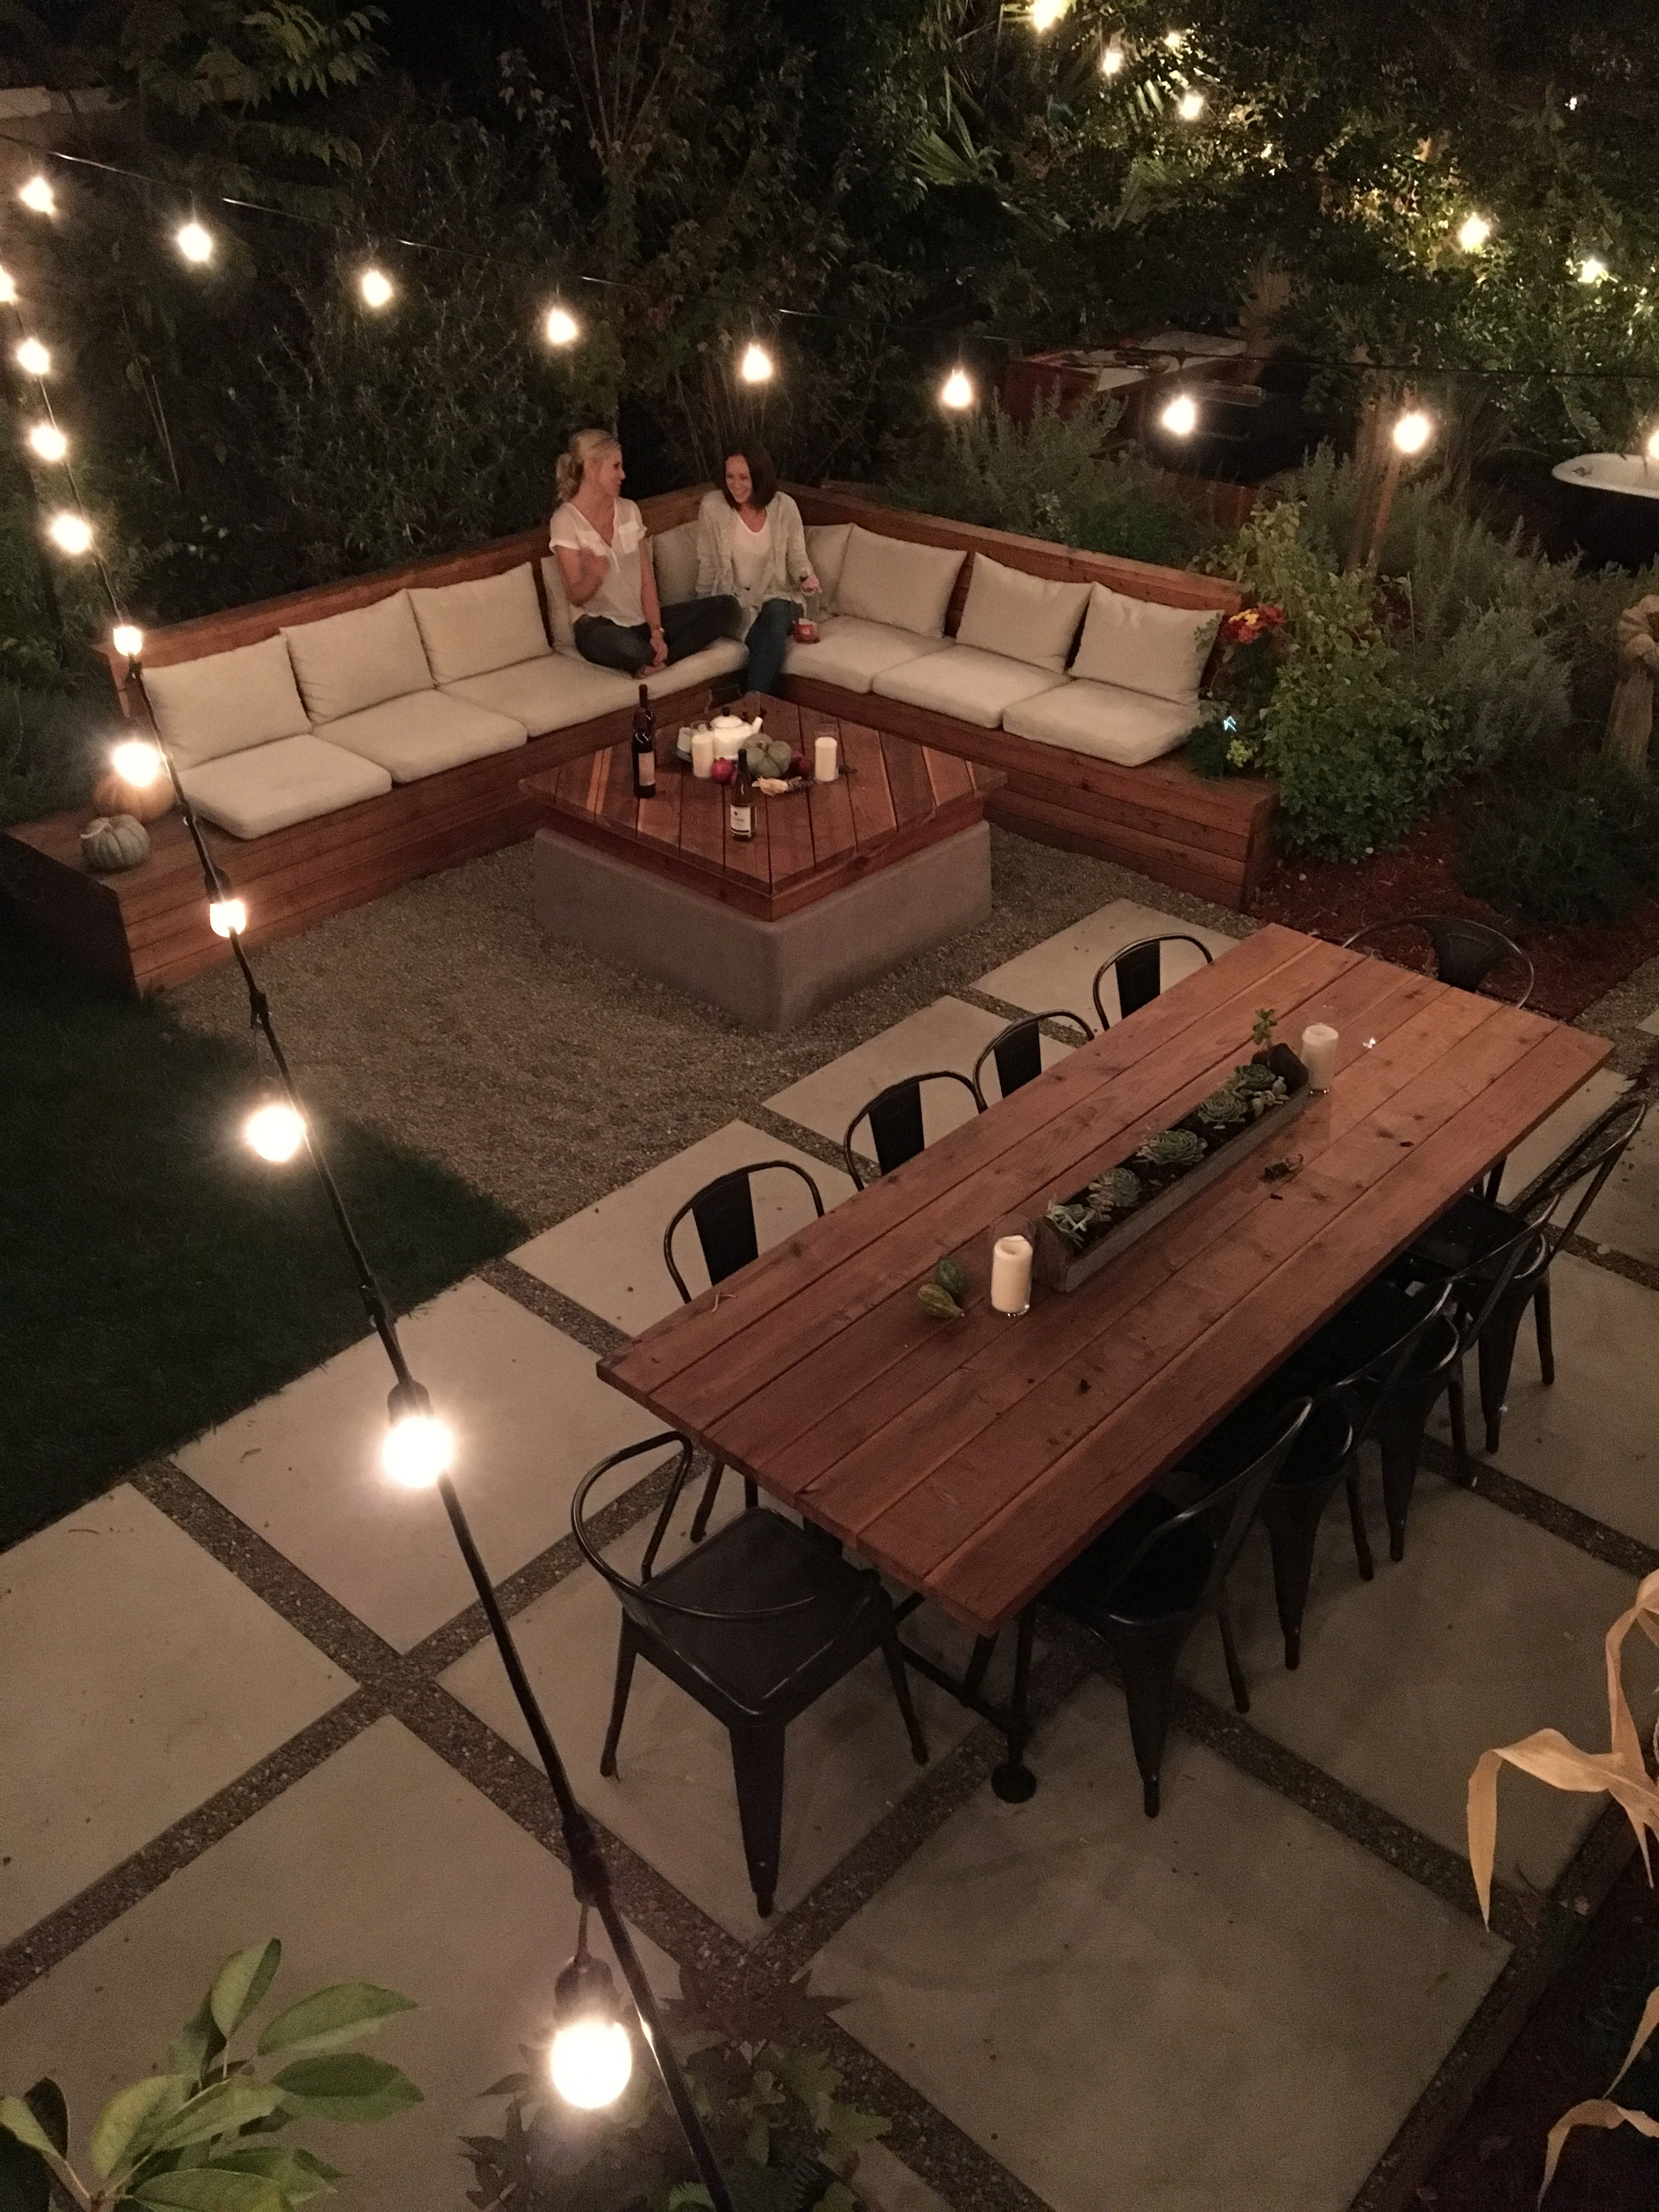 Our outdoor seating area and patio were two of our favorite